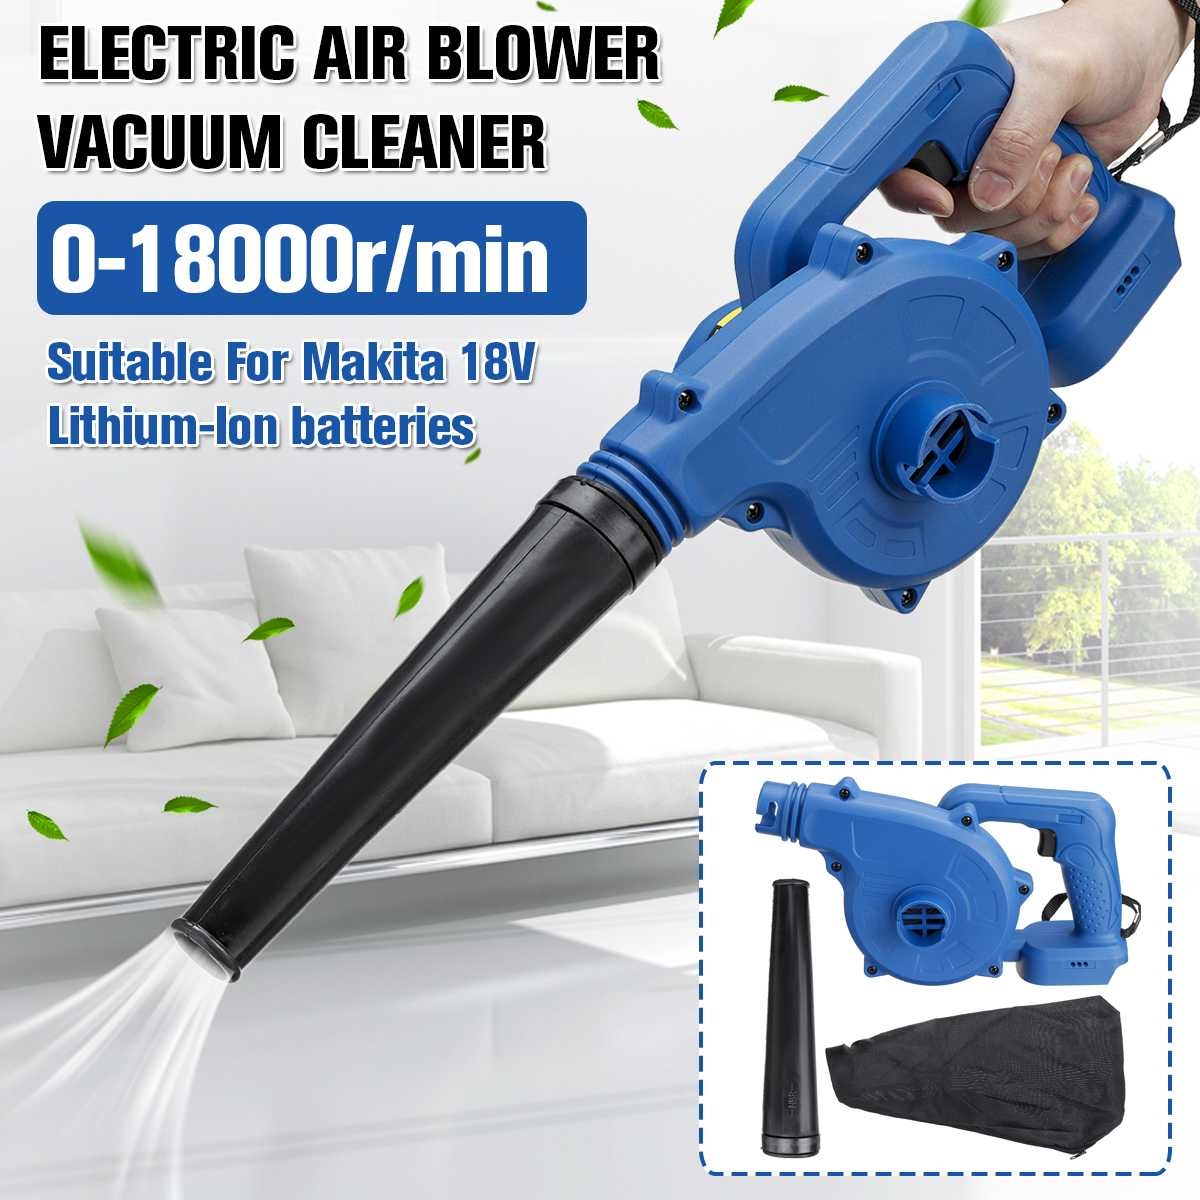 Electric Vacuum Cleaner Cordless Air Blower Household Wireless Vacuum Cleaner <font><b>Tool</b></font> for <font><b>Makita</b></font> 18V Li-ion Battery for Home Office image